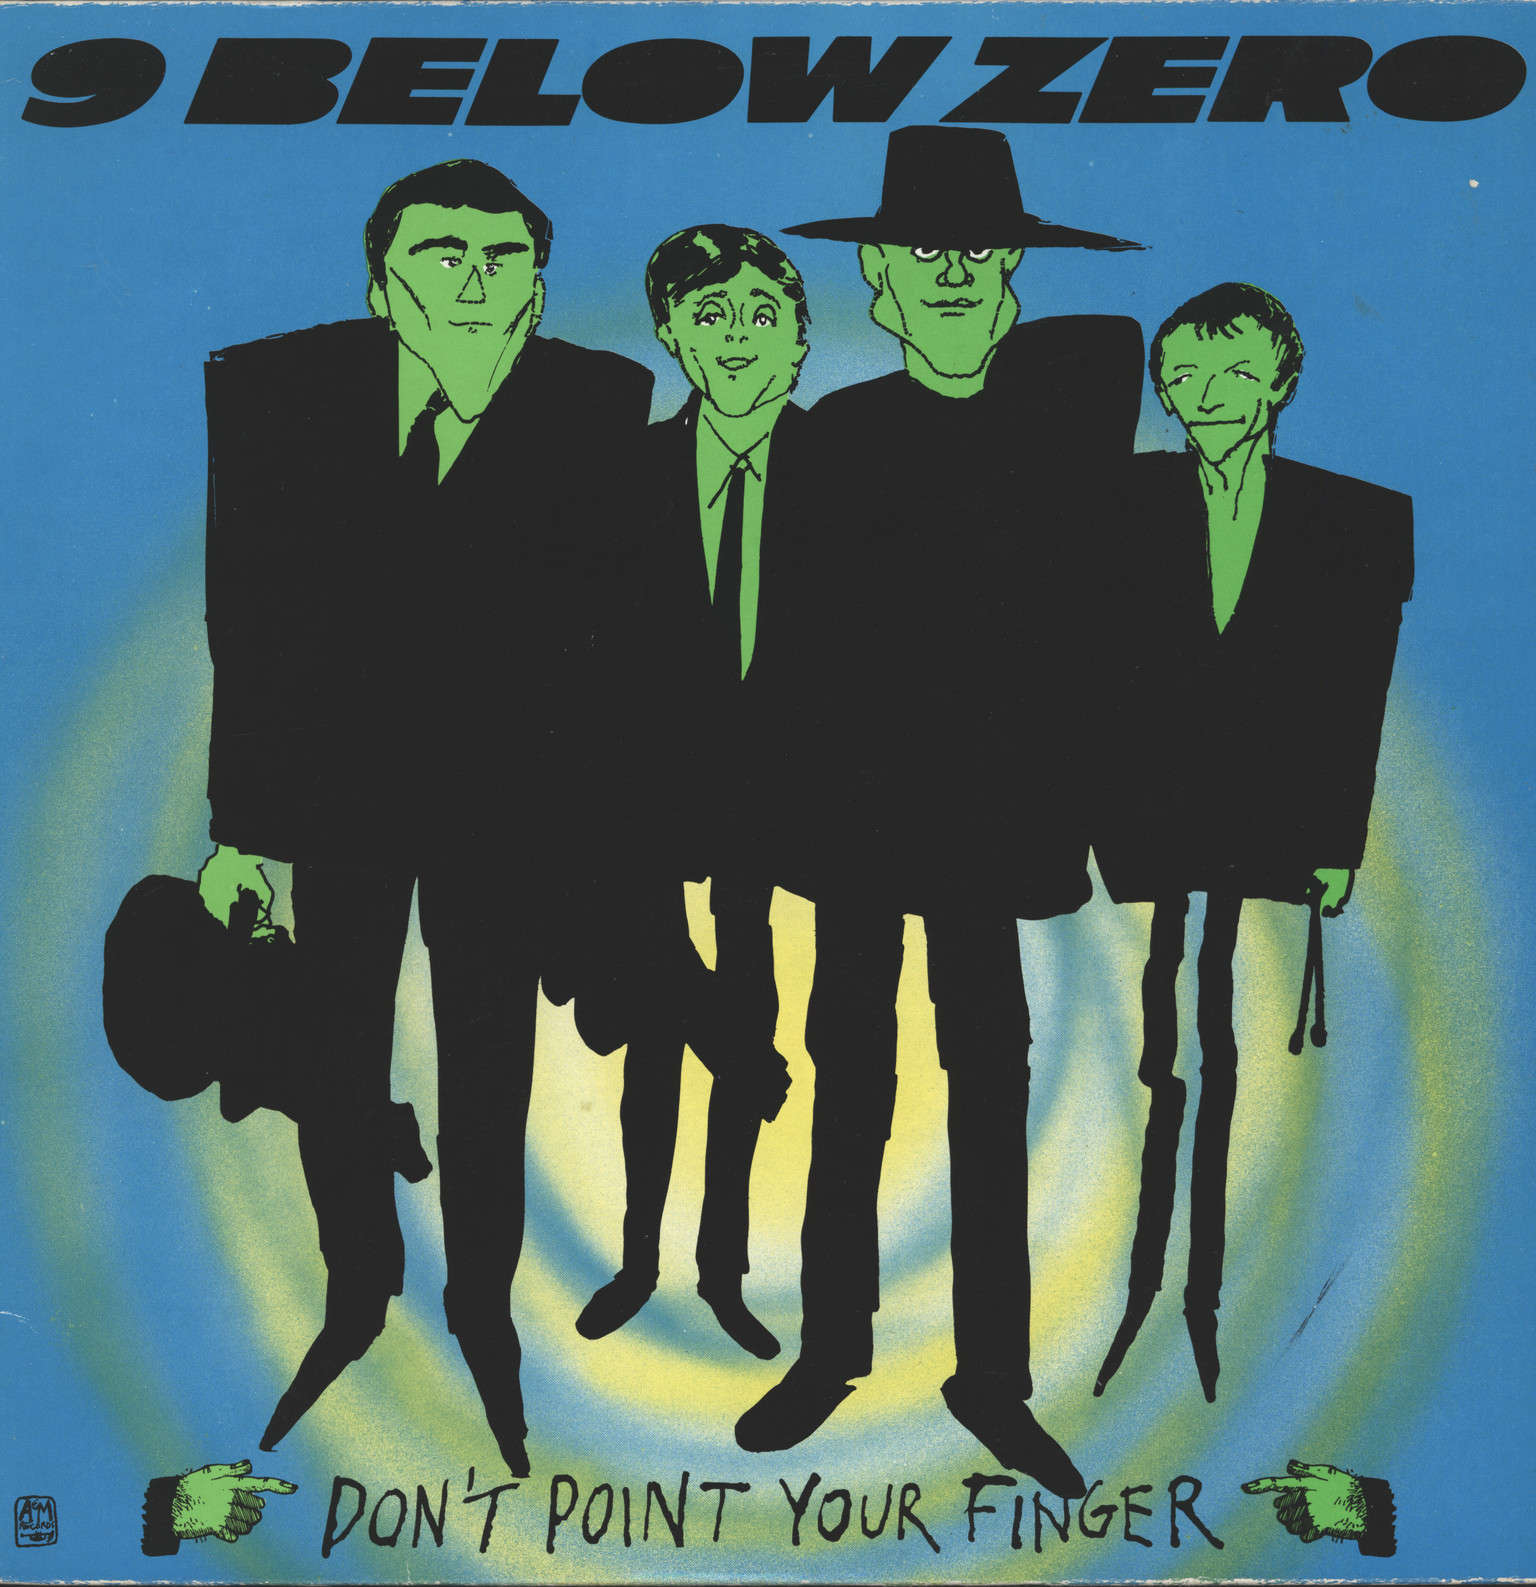 Nine Below Zero: Don't Point Your Finger, LP (Vinyl)